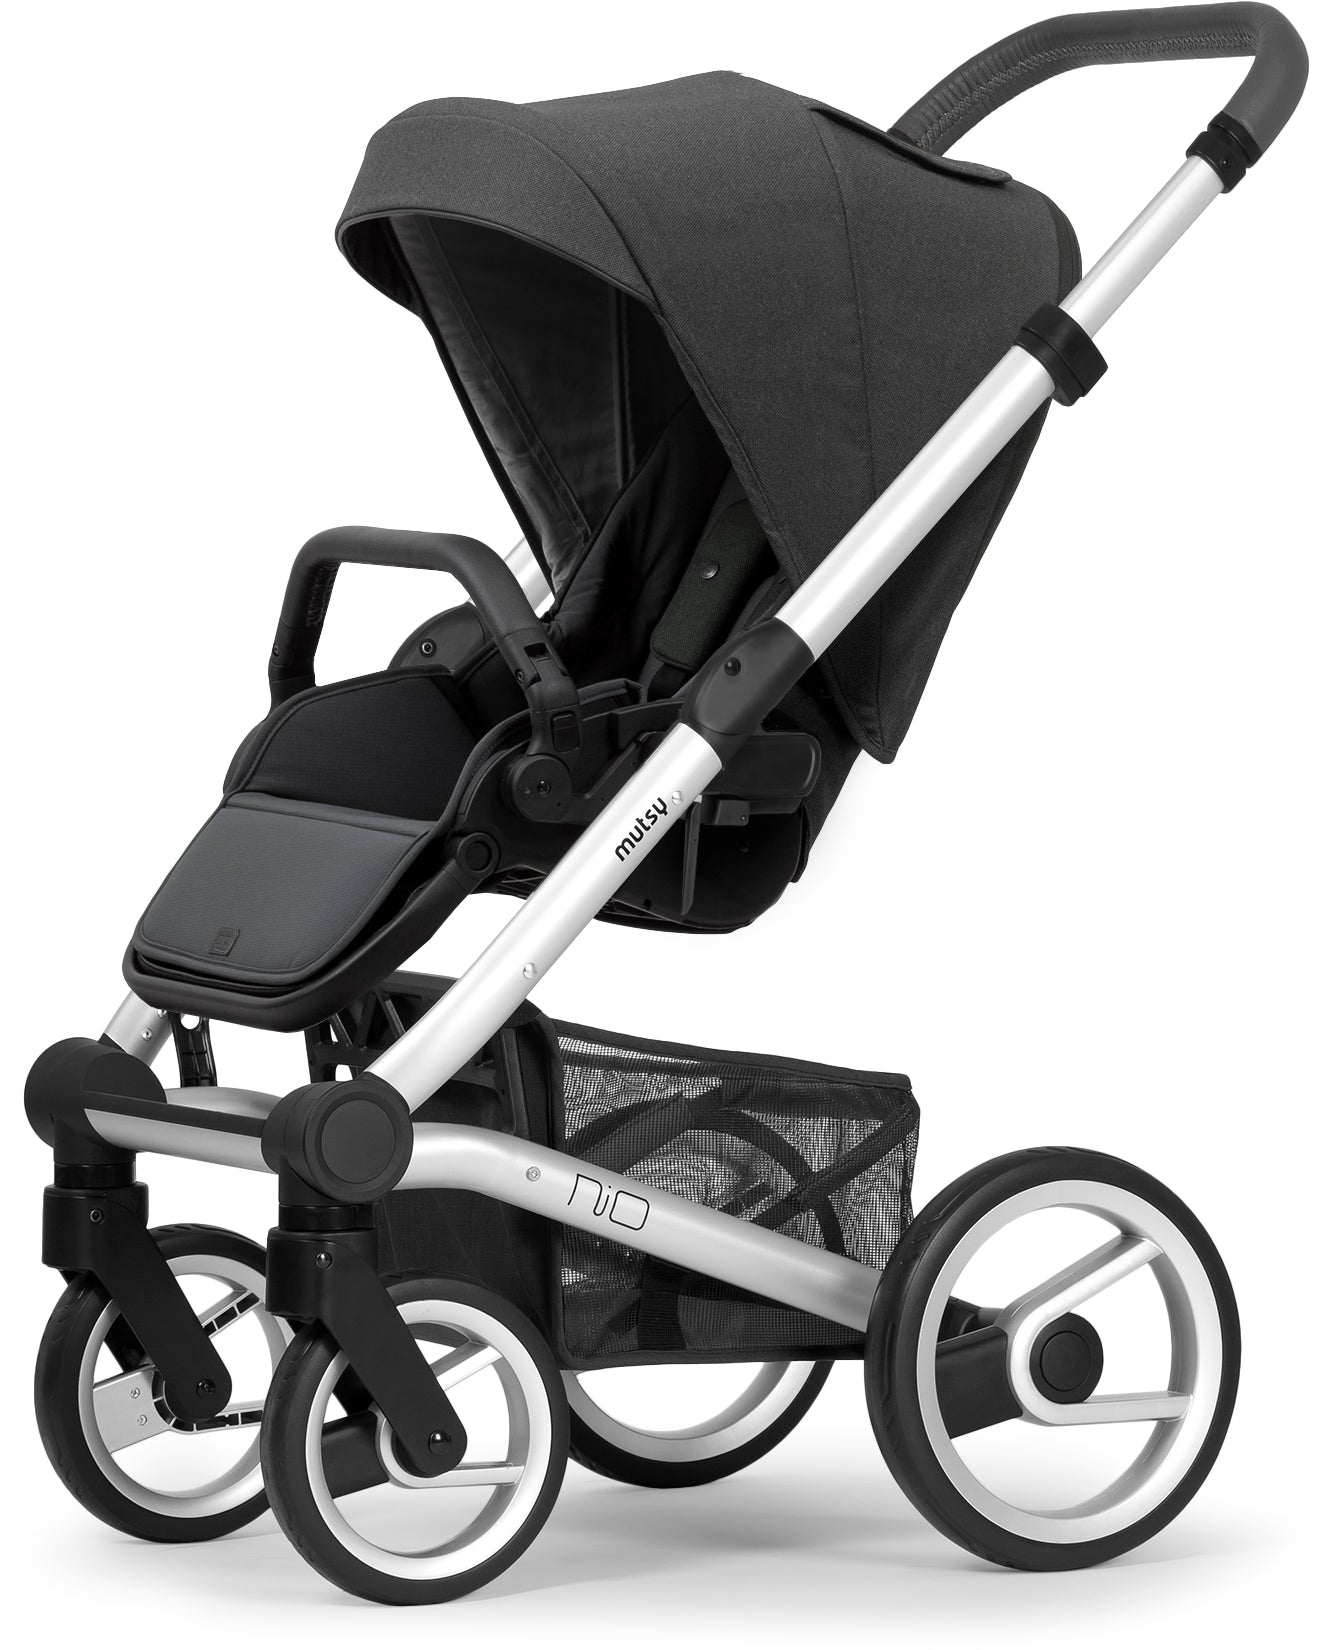 Mutsy Mutsy Nio Pushchair Explore Shade